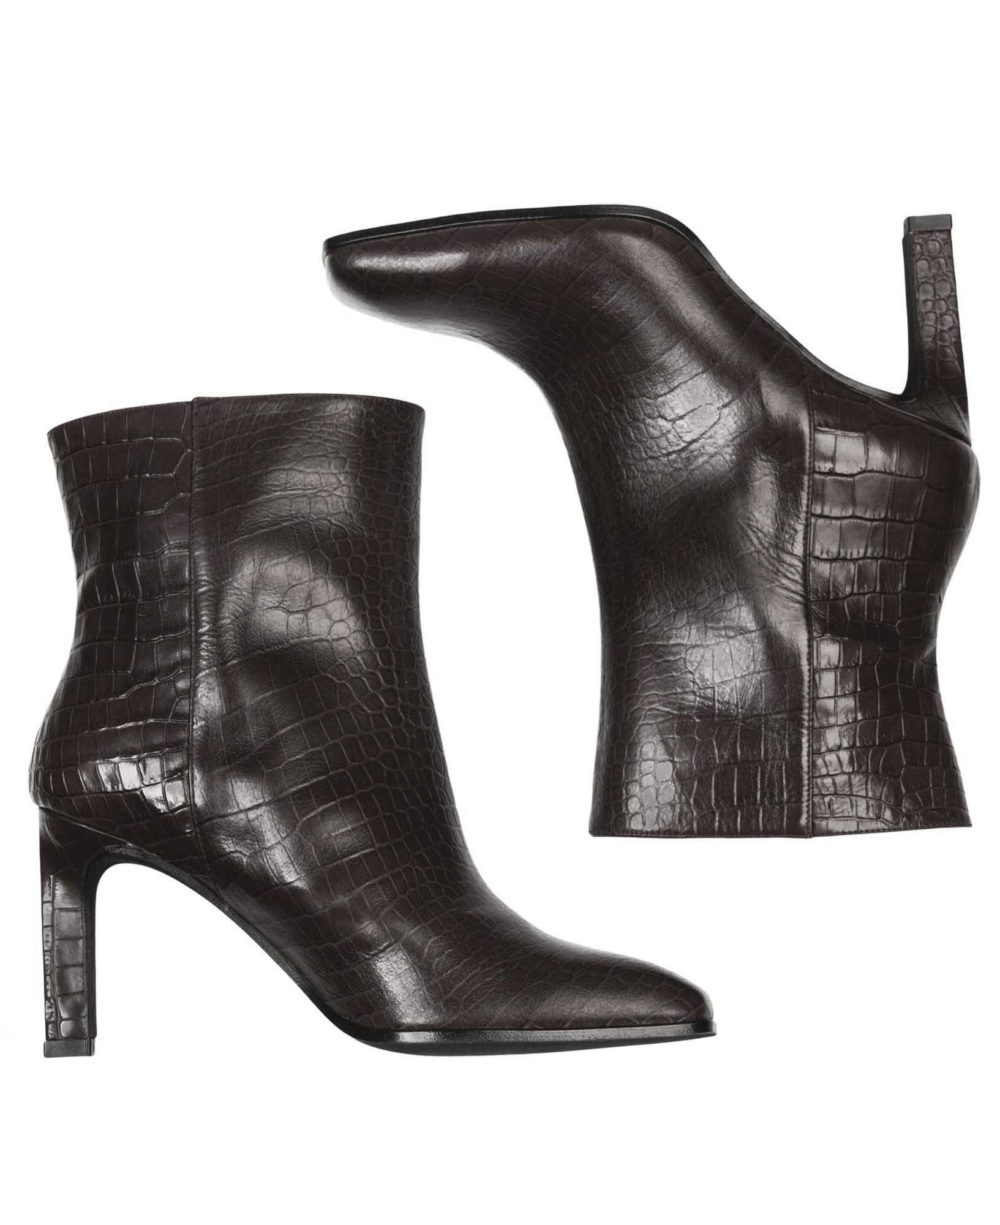 Leather booties Paco Gil  P-3888 Black Coco  C